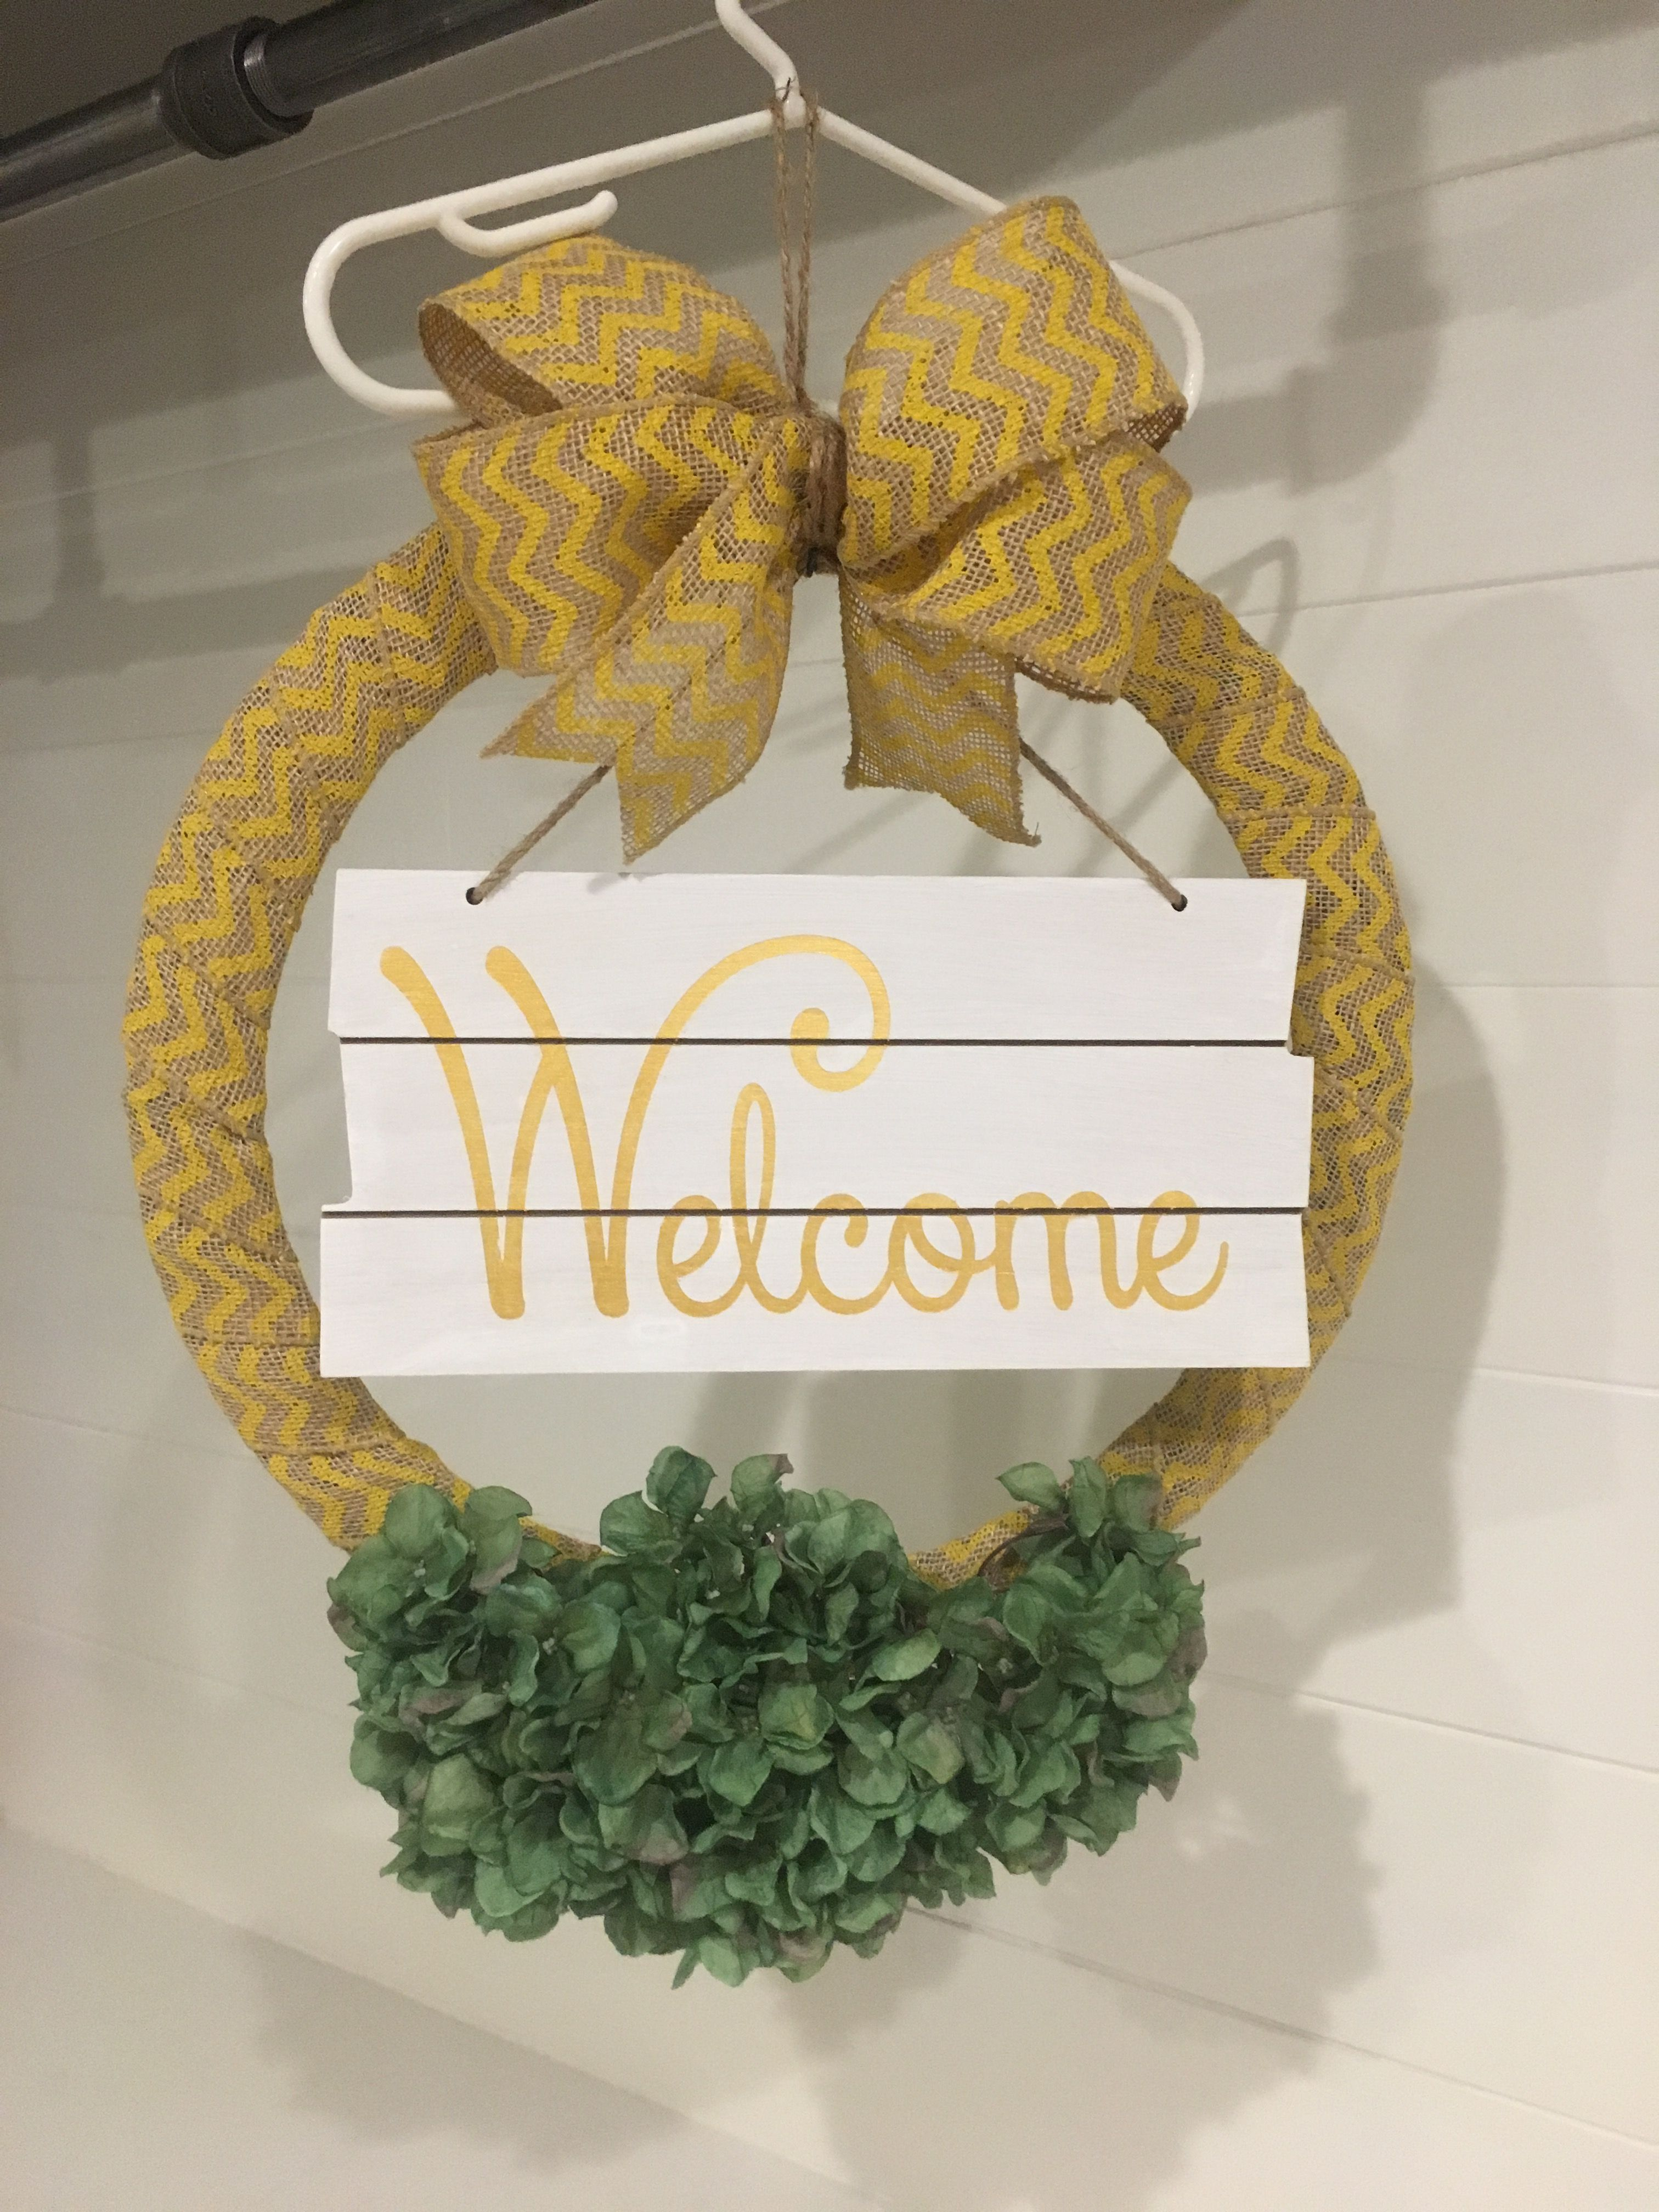 welcome front porch reversible wreath sign bought wire wreath form greenery wood board - Wire Wreath Frame Hobby Lobby